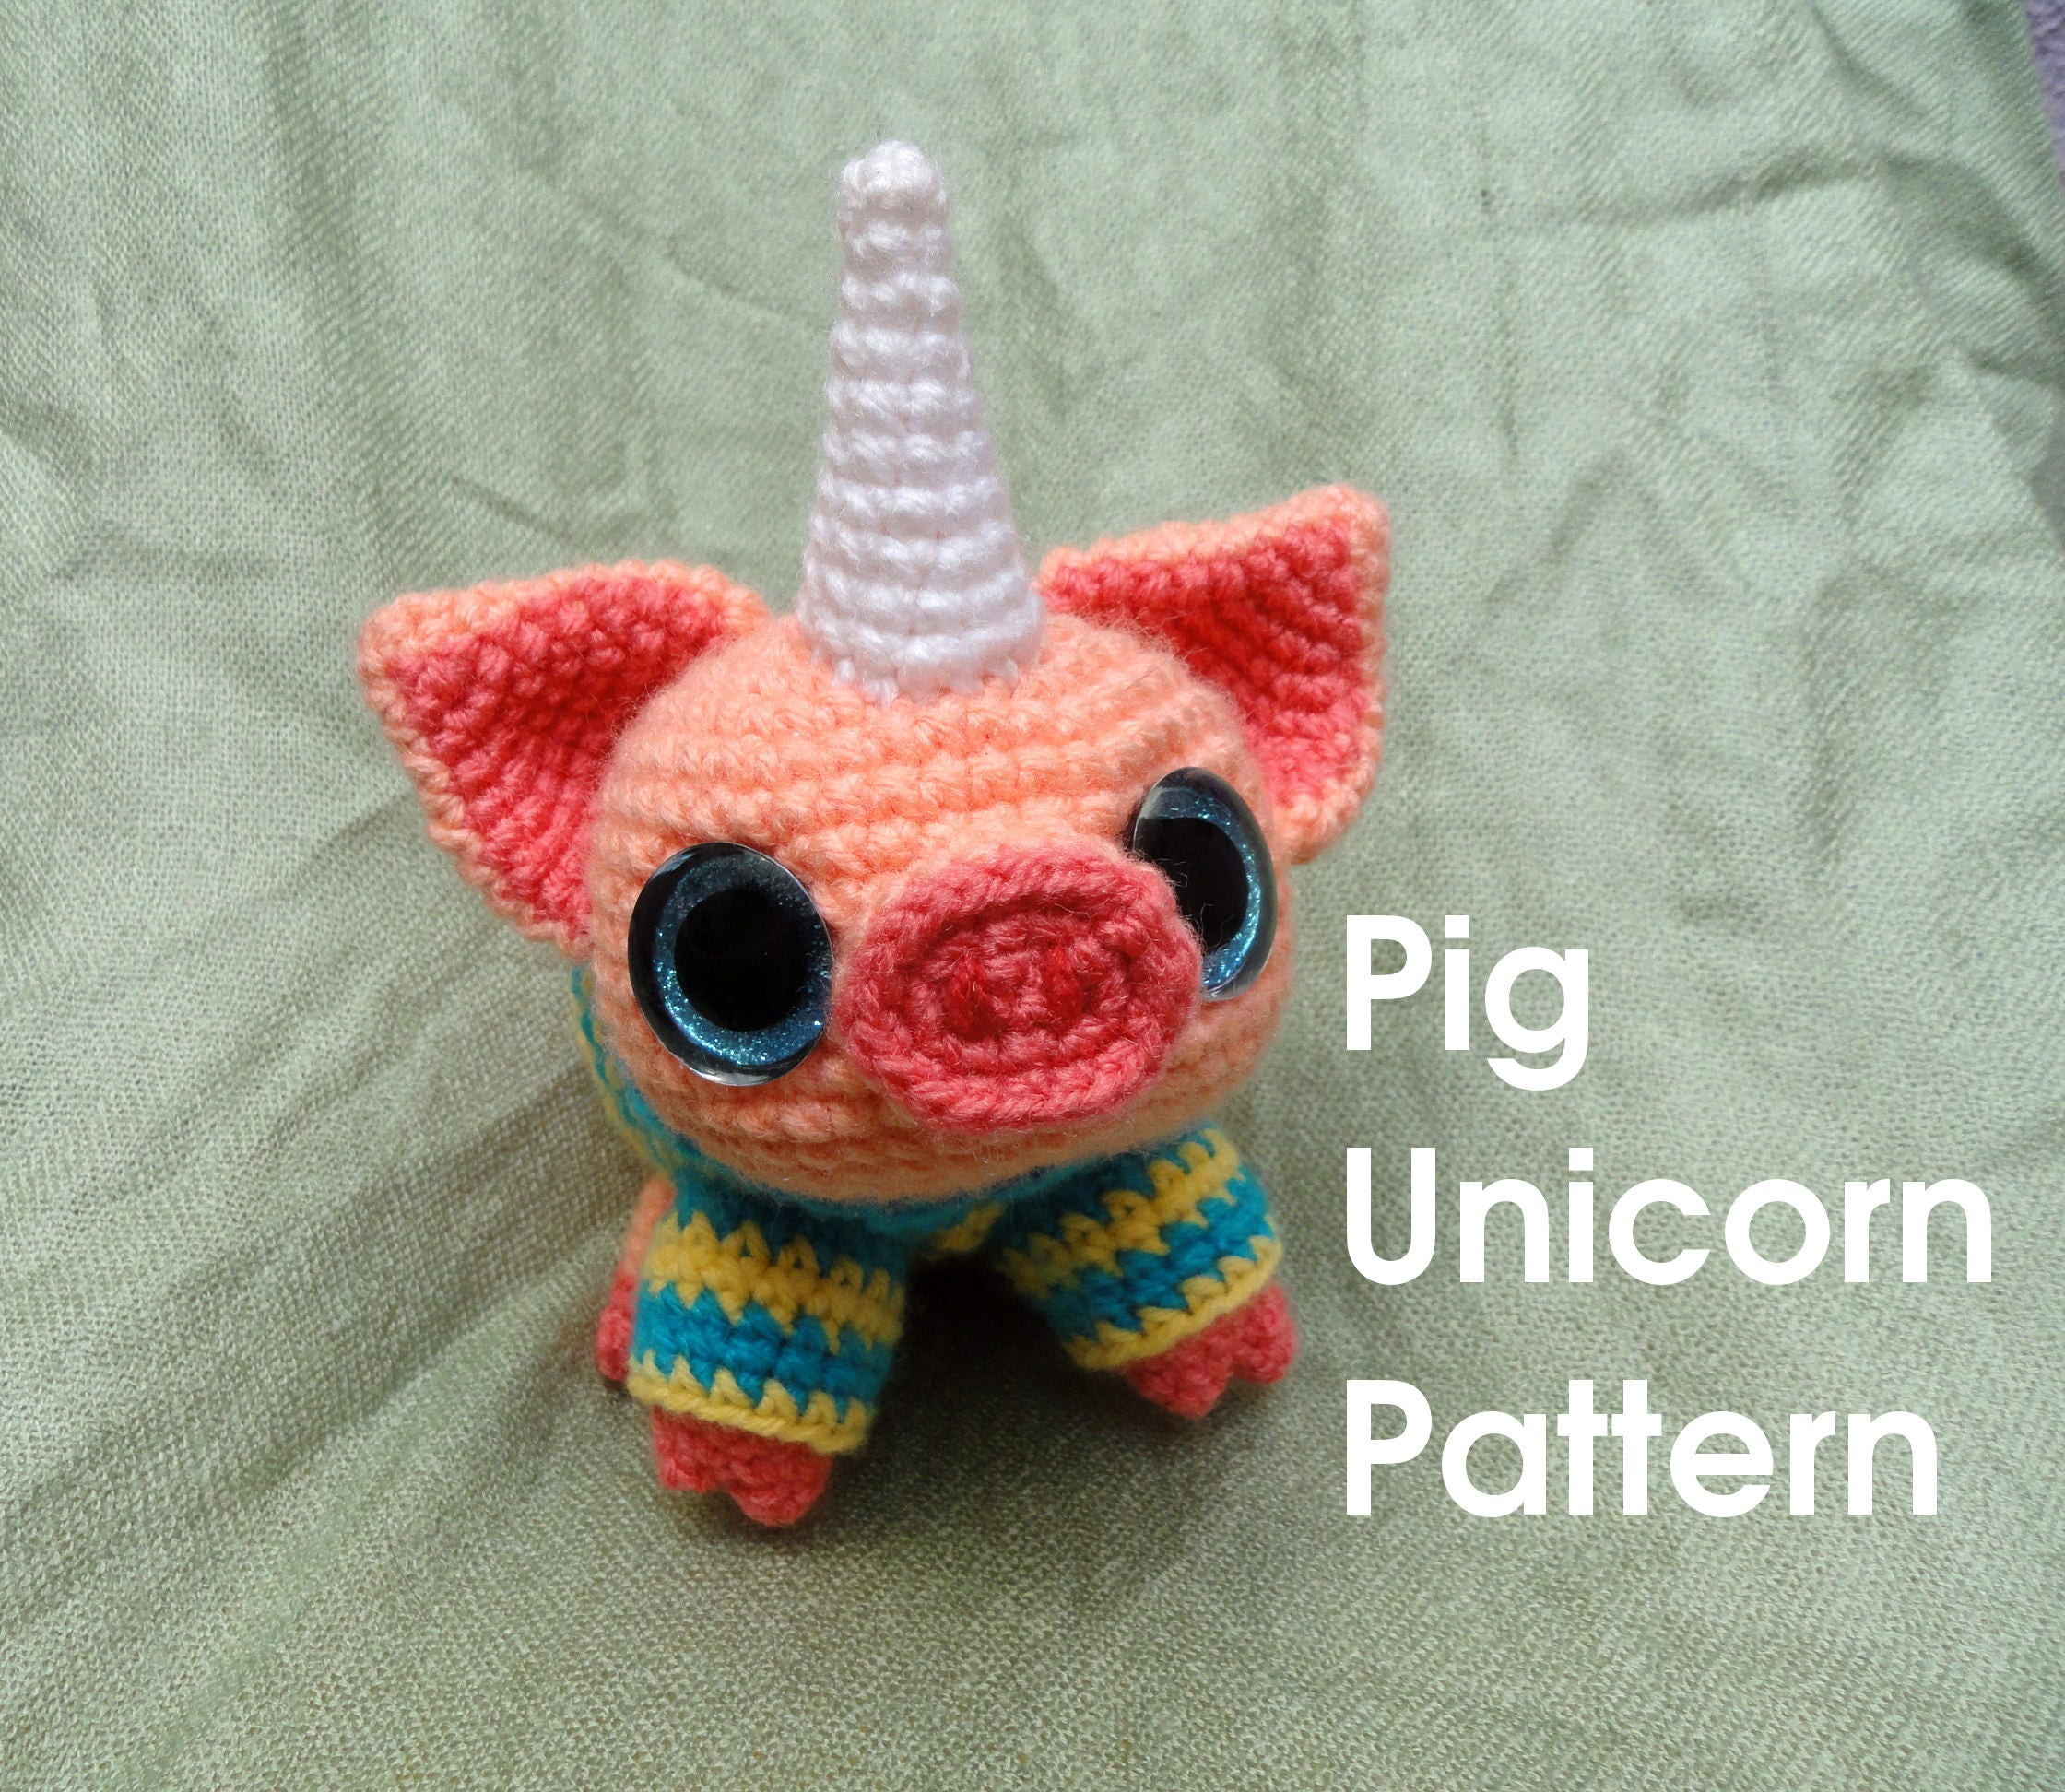 Pig unicorn Pattern